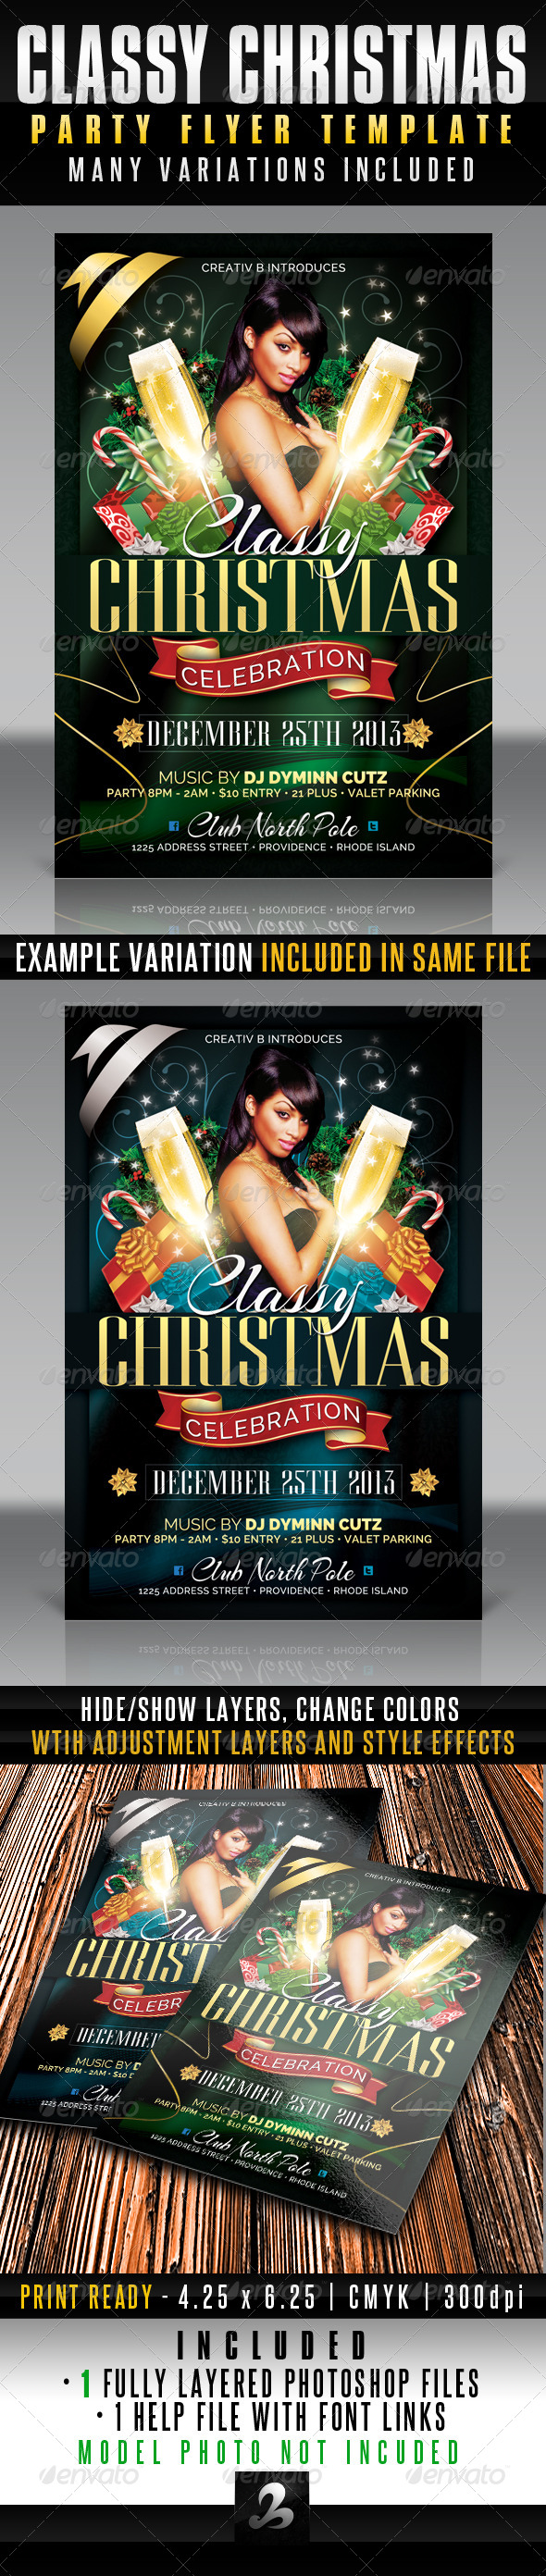 GraphicRiver Classy Christmas Party Flyer Template 6340018